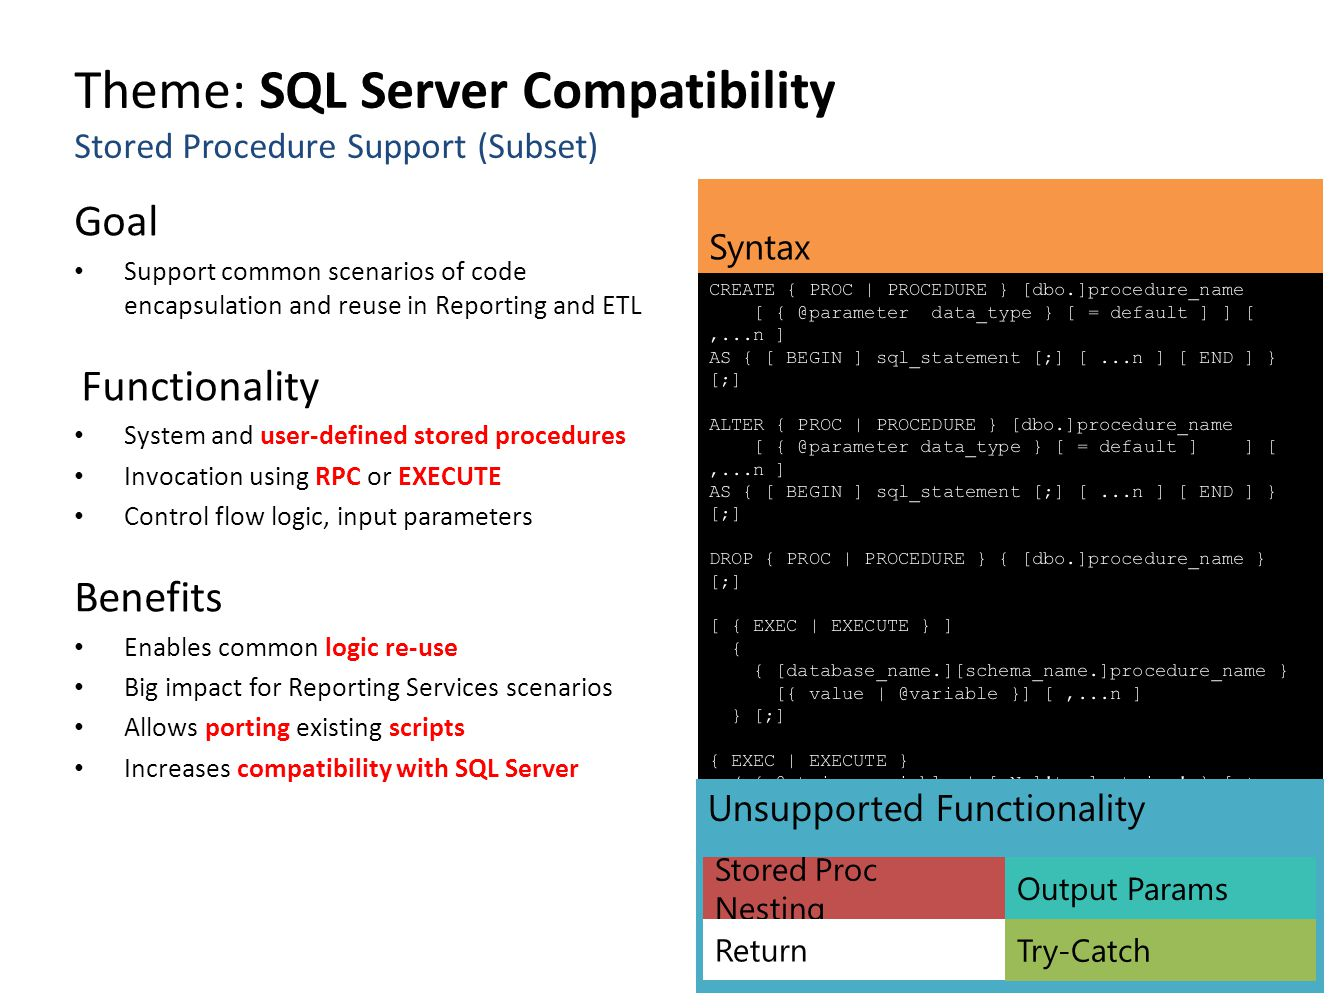 Theme: SQL Server Compatibility Stored Procedure Support (Subset) Goal Support common scenarios of code encapsulation and reuse in Reporting and ETL F